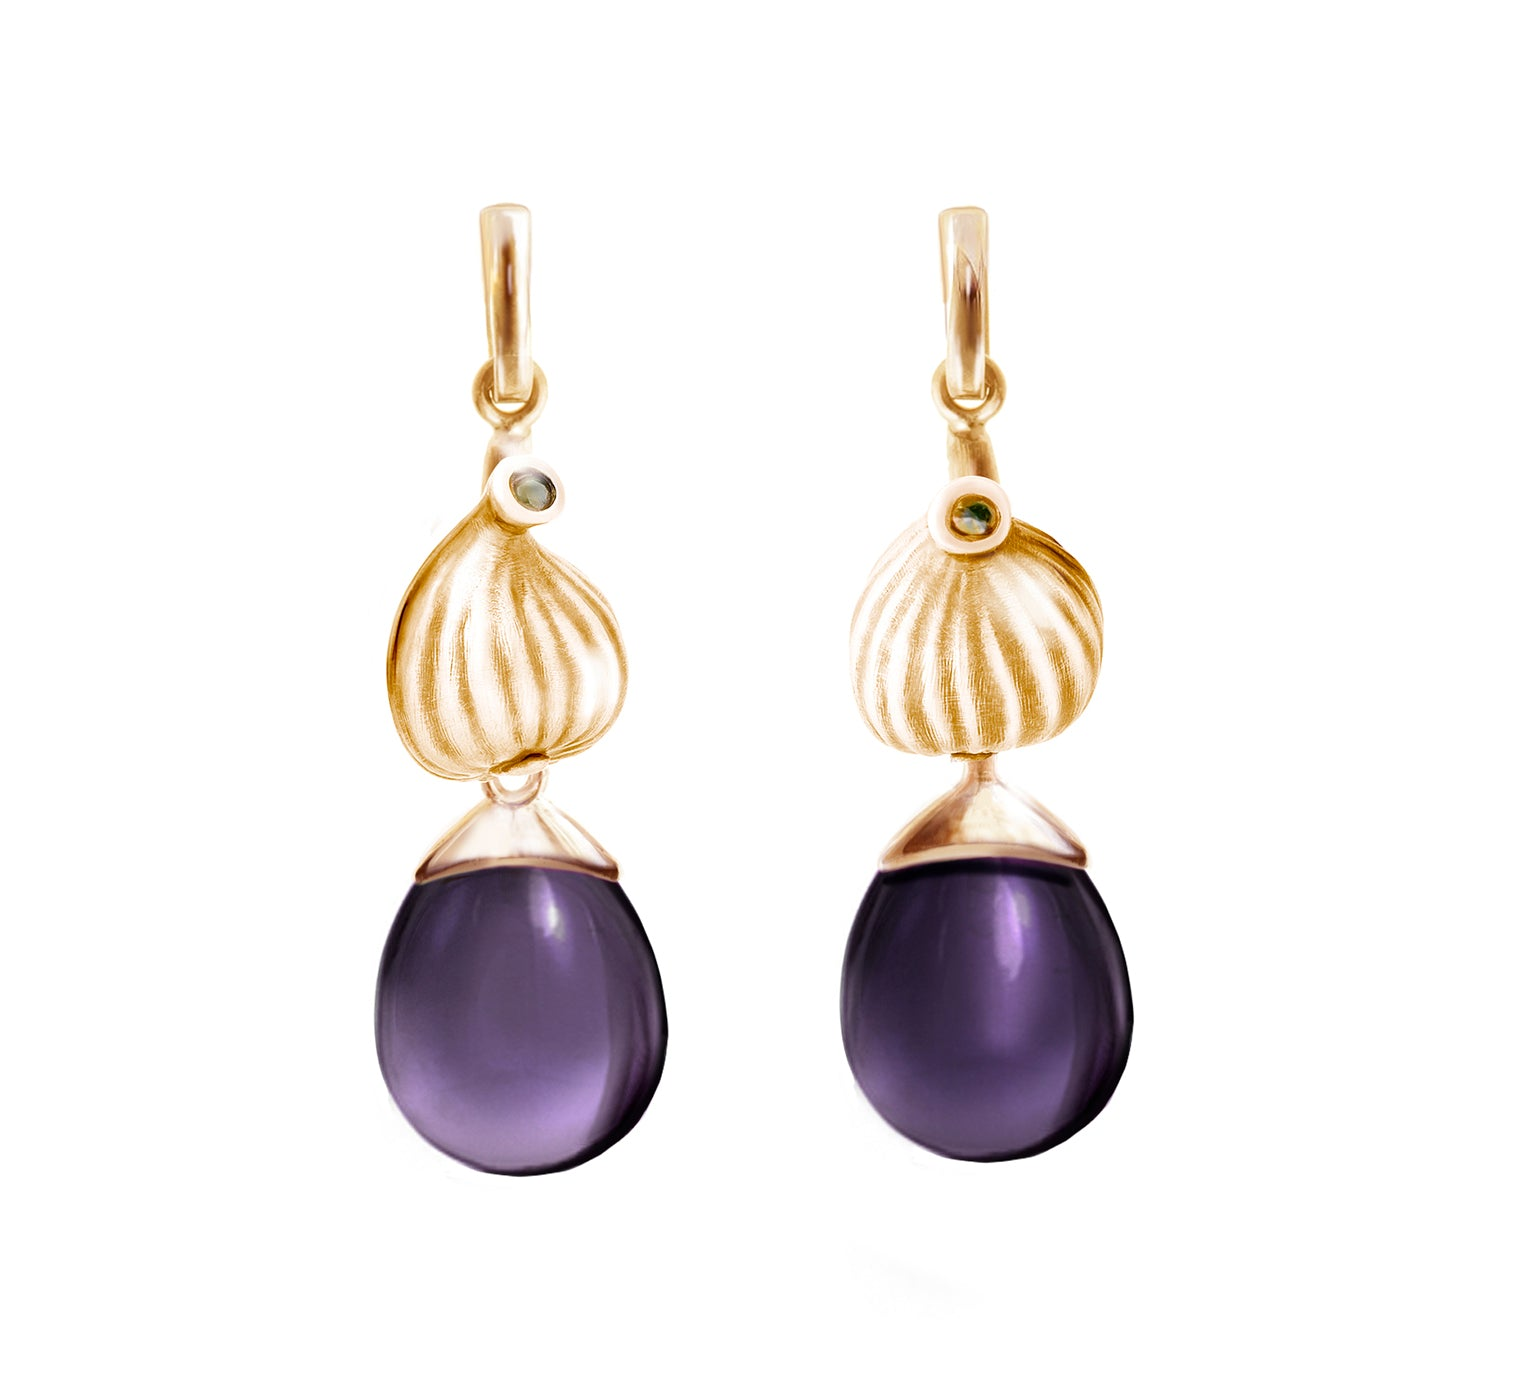 18 Kt Rose Gold Fig Cocktail Earrings with Amethysts and Diamonds by the Artist